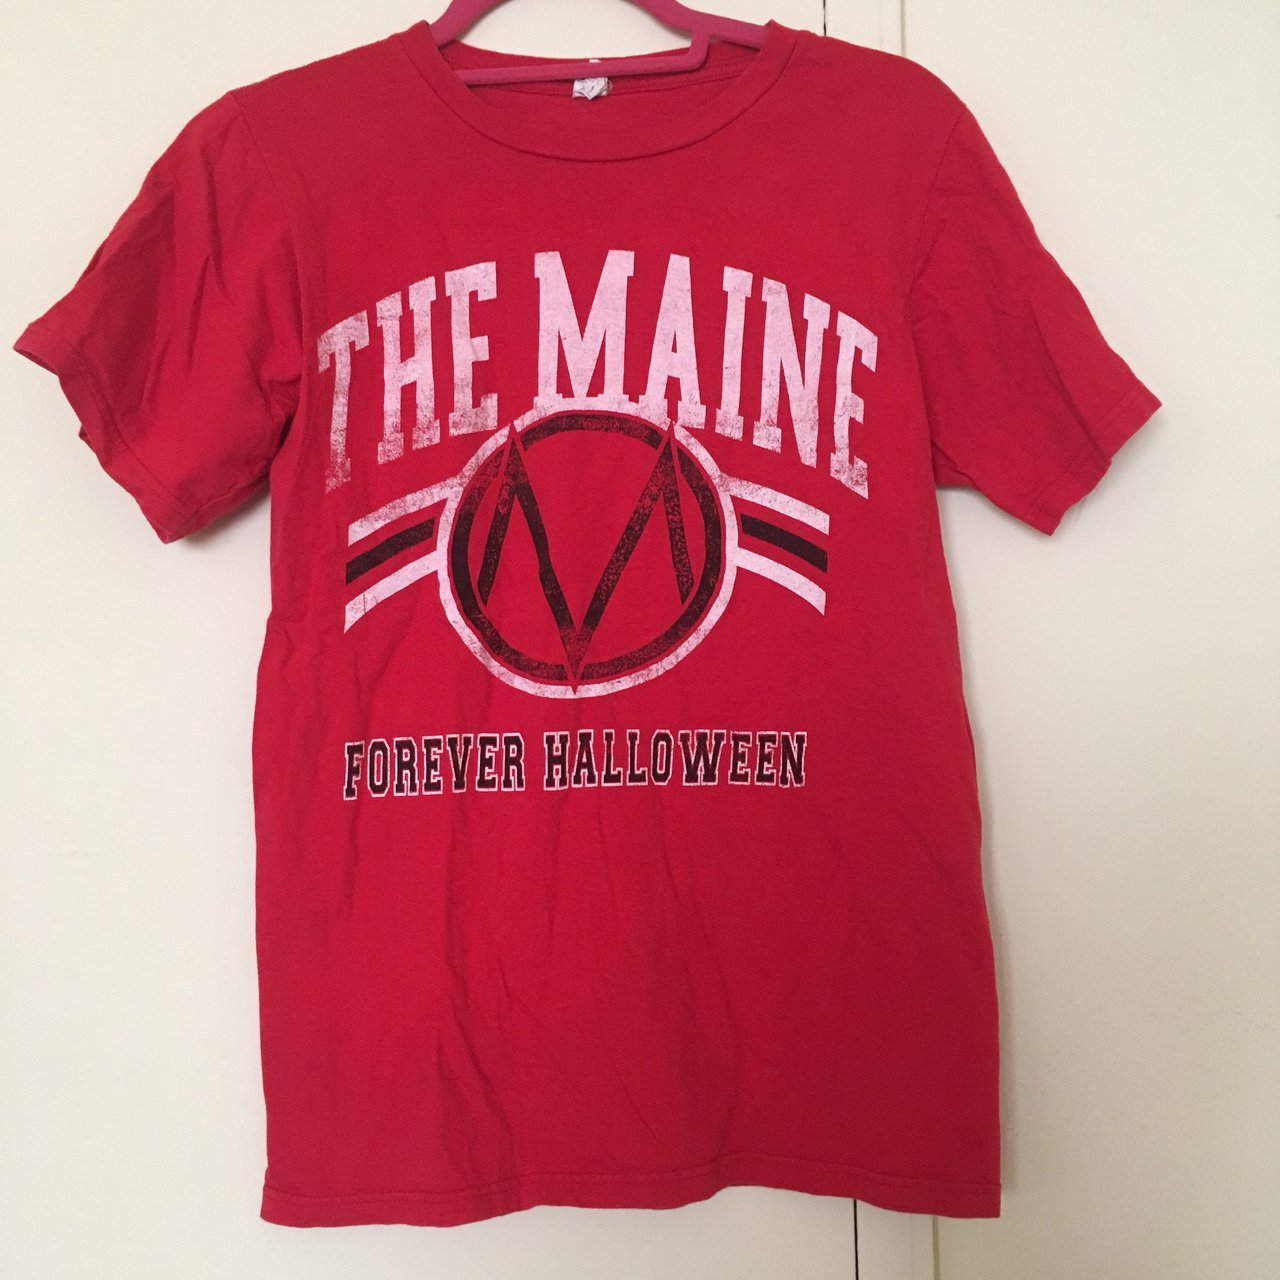 the maine 'forever halloween' t-shirt in red probably worn - depop